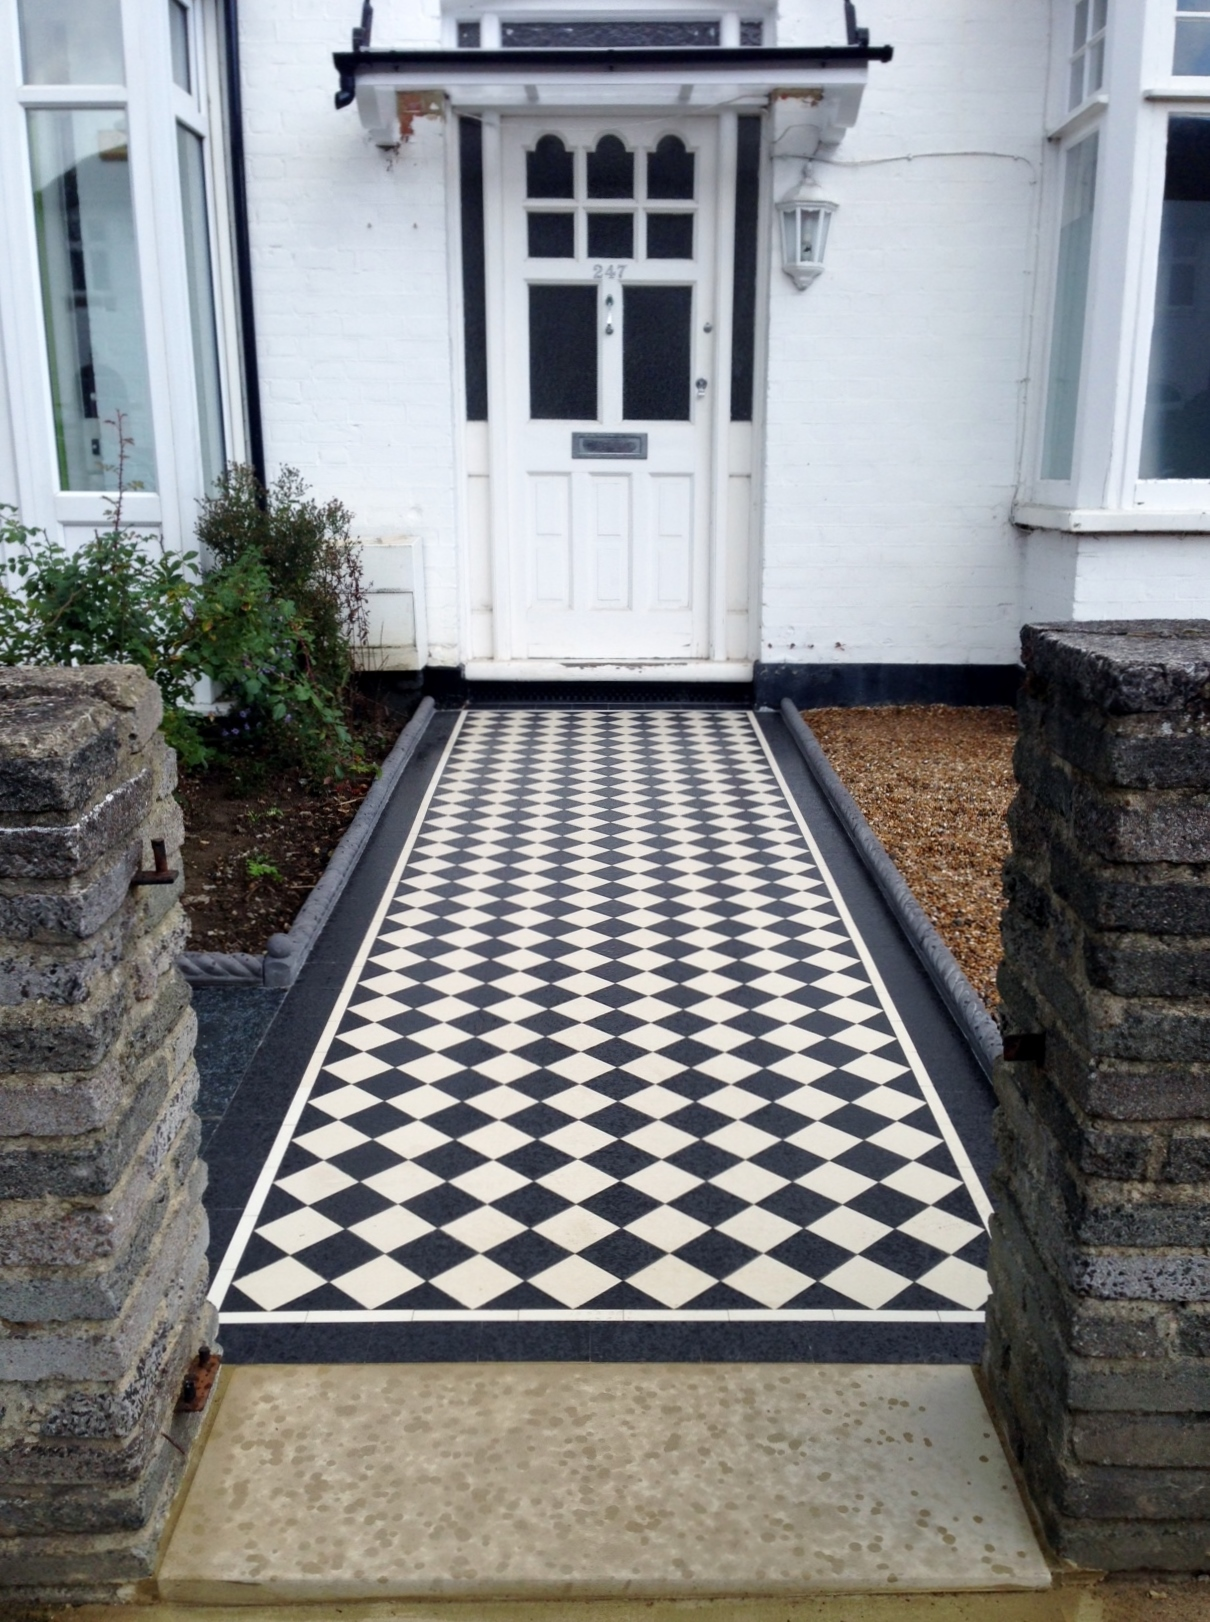 Victorian black and white mosaic tile garden path rope edge tile brockley lea catford london (6)